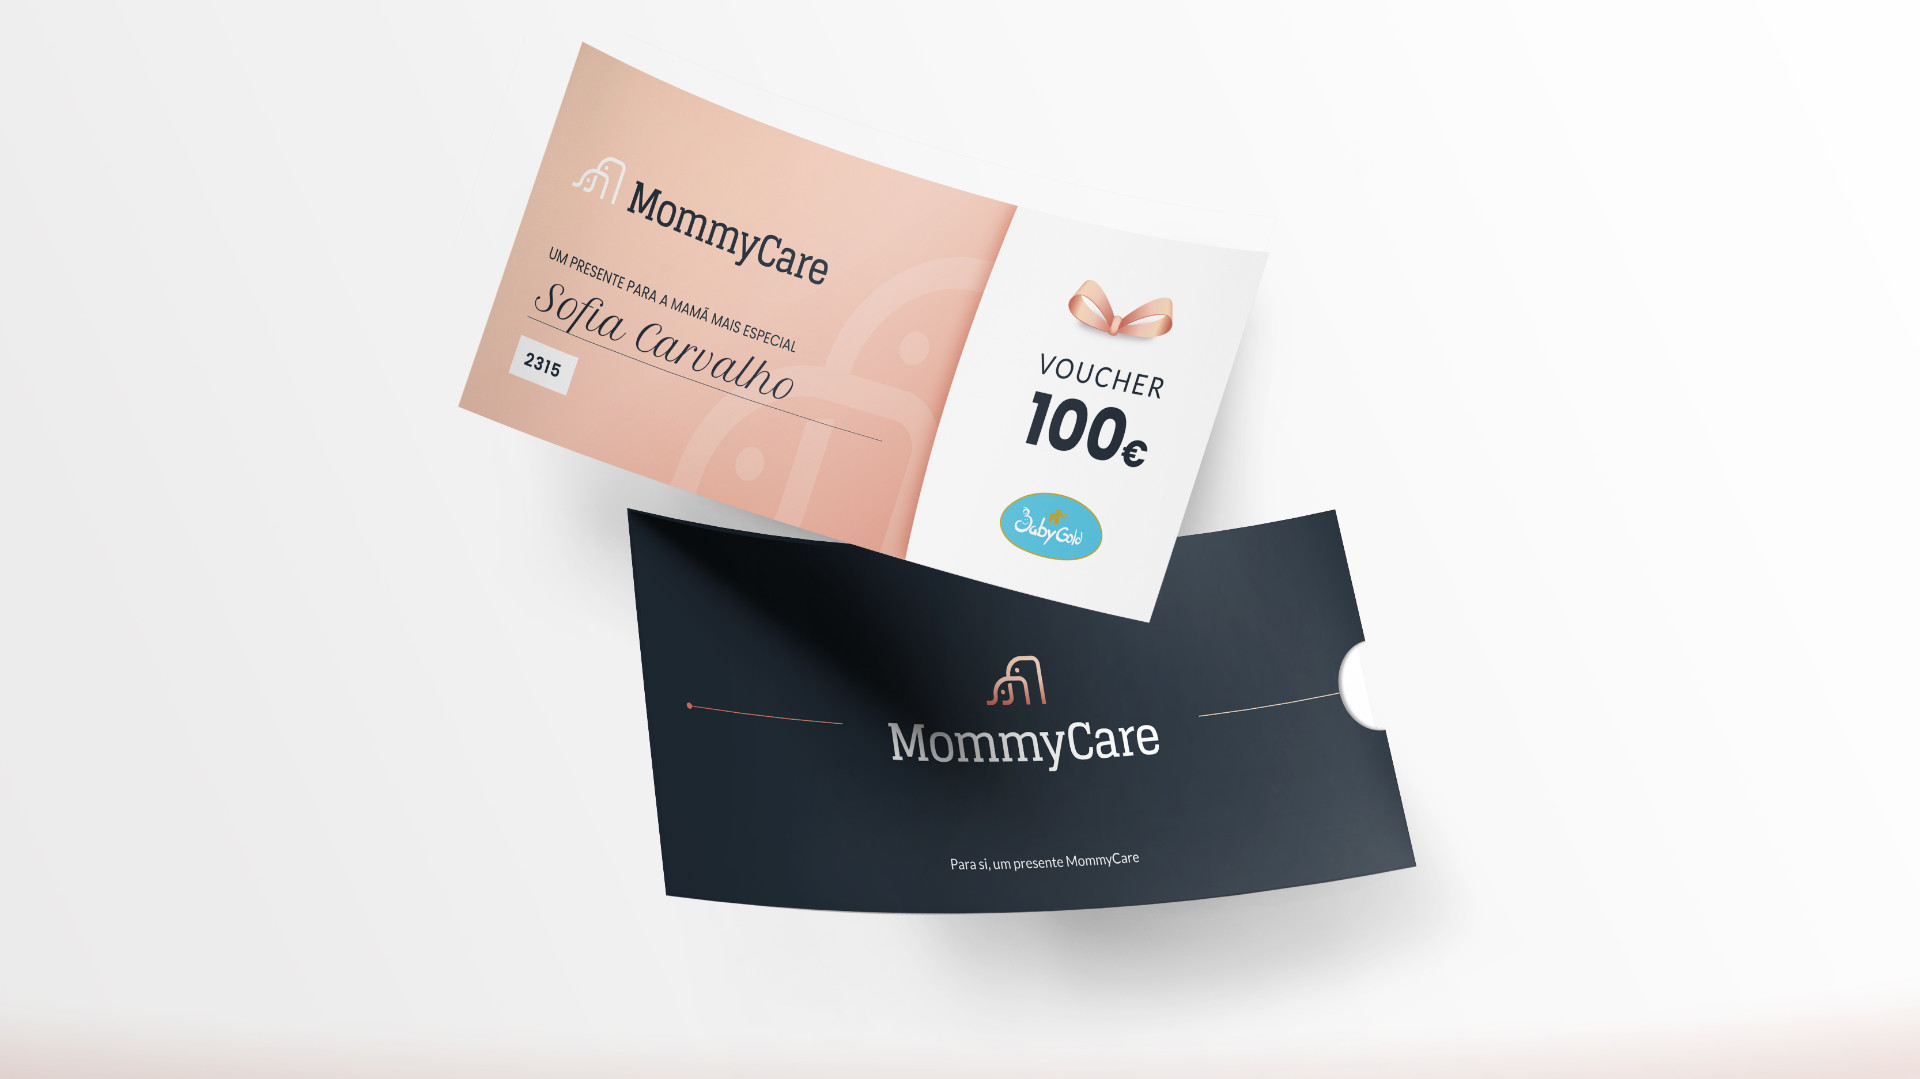 Voucher da MommyCare